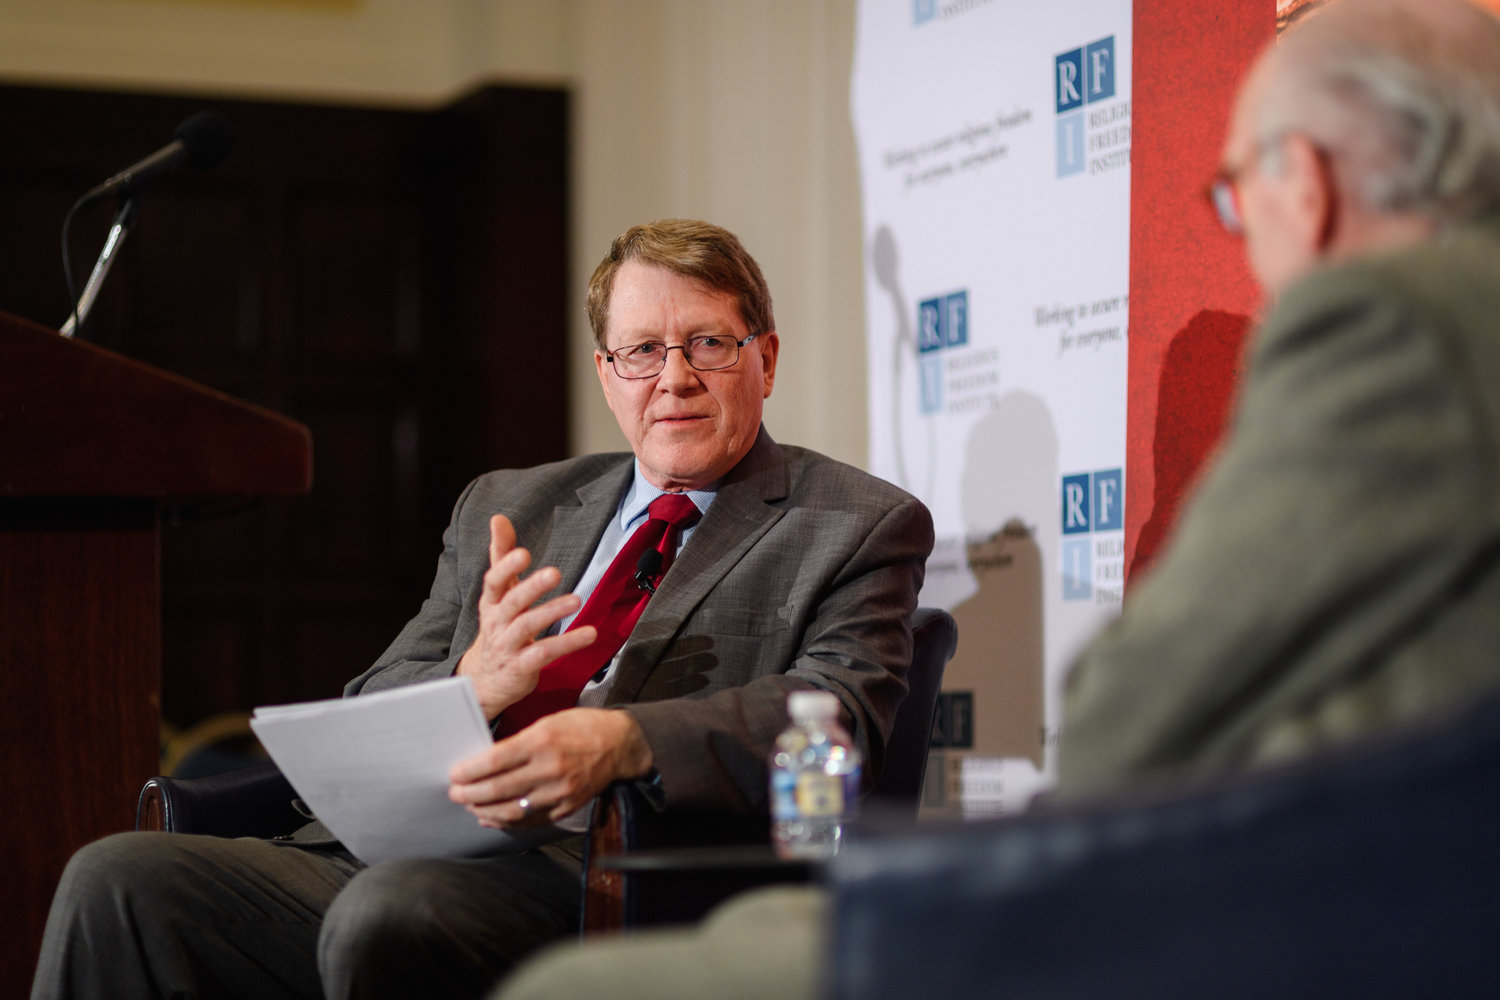 Kent Hill, Executive Director, Religious Freedom Institute, interviews author Martin Mosebach on what he learned in writing his book on the martyrdom of 21 Christians killed in Libya.  Photo: RFI/Nathan Mitchell